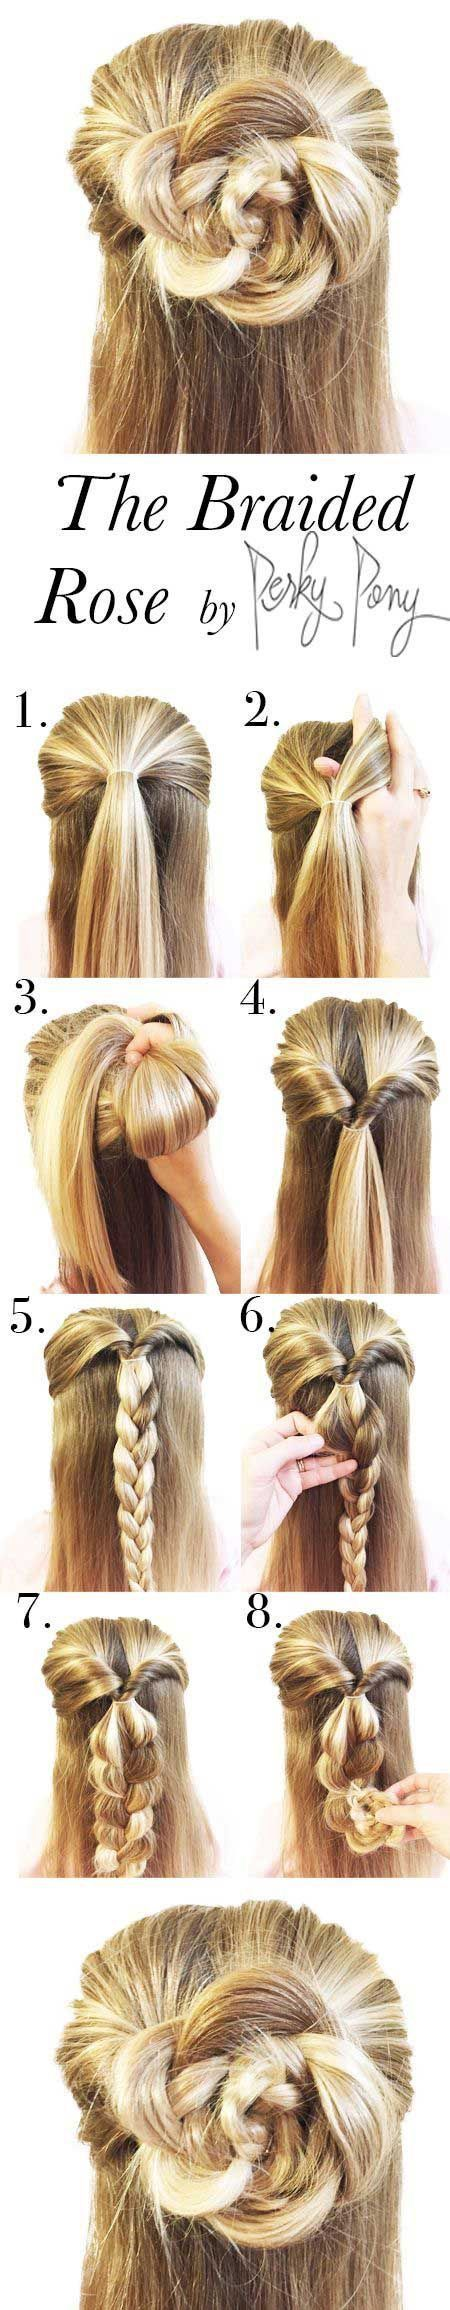 28 best images about hairstyles for nurses on pinterest